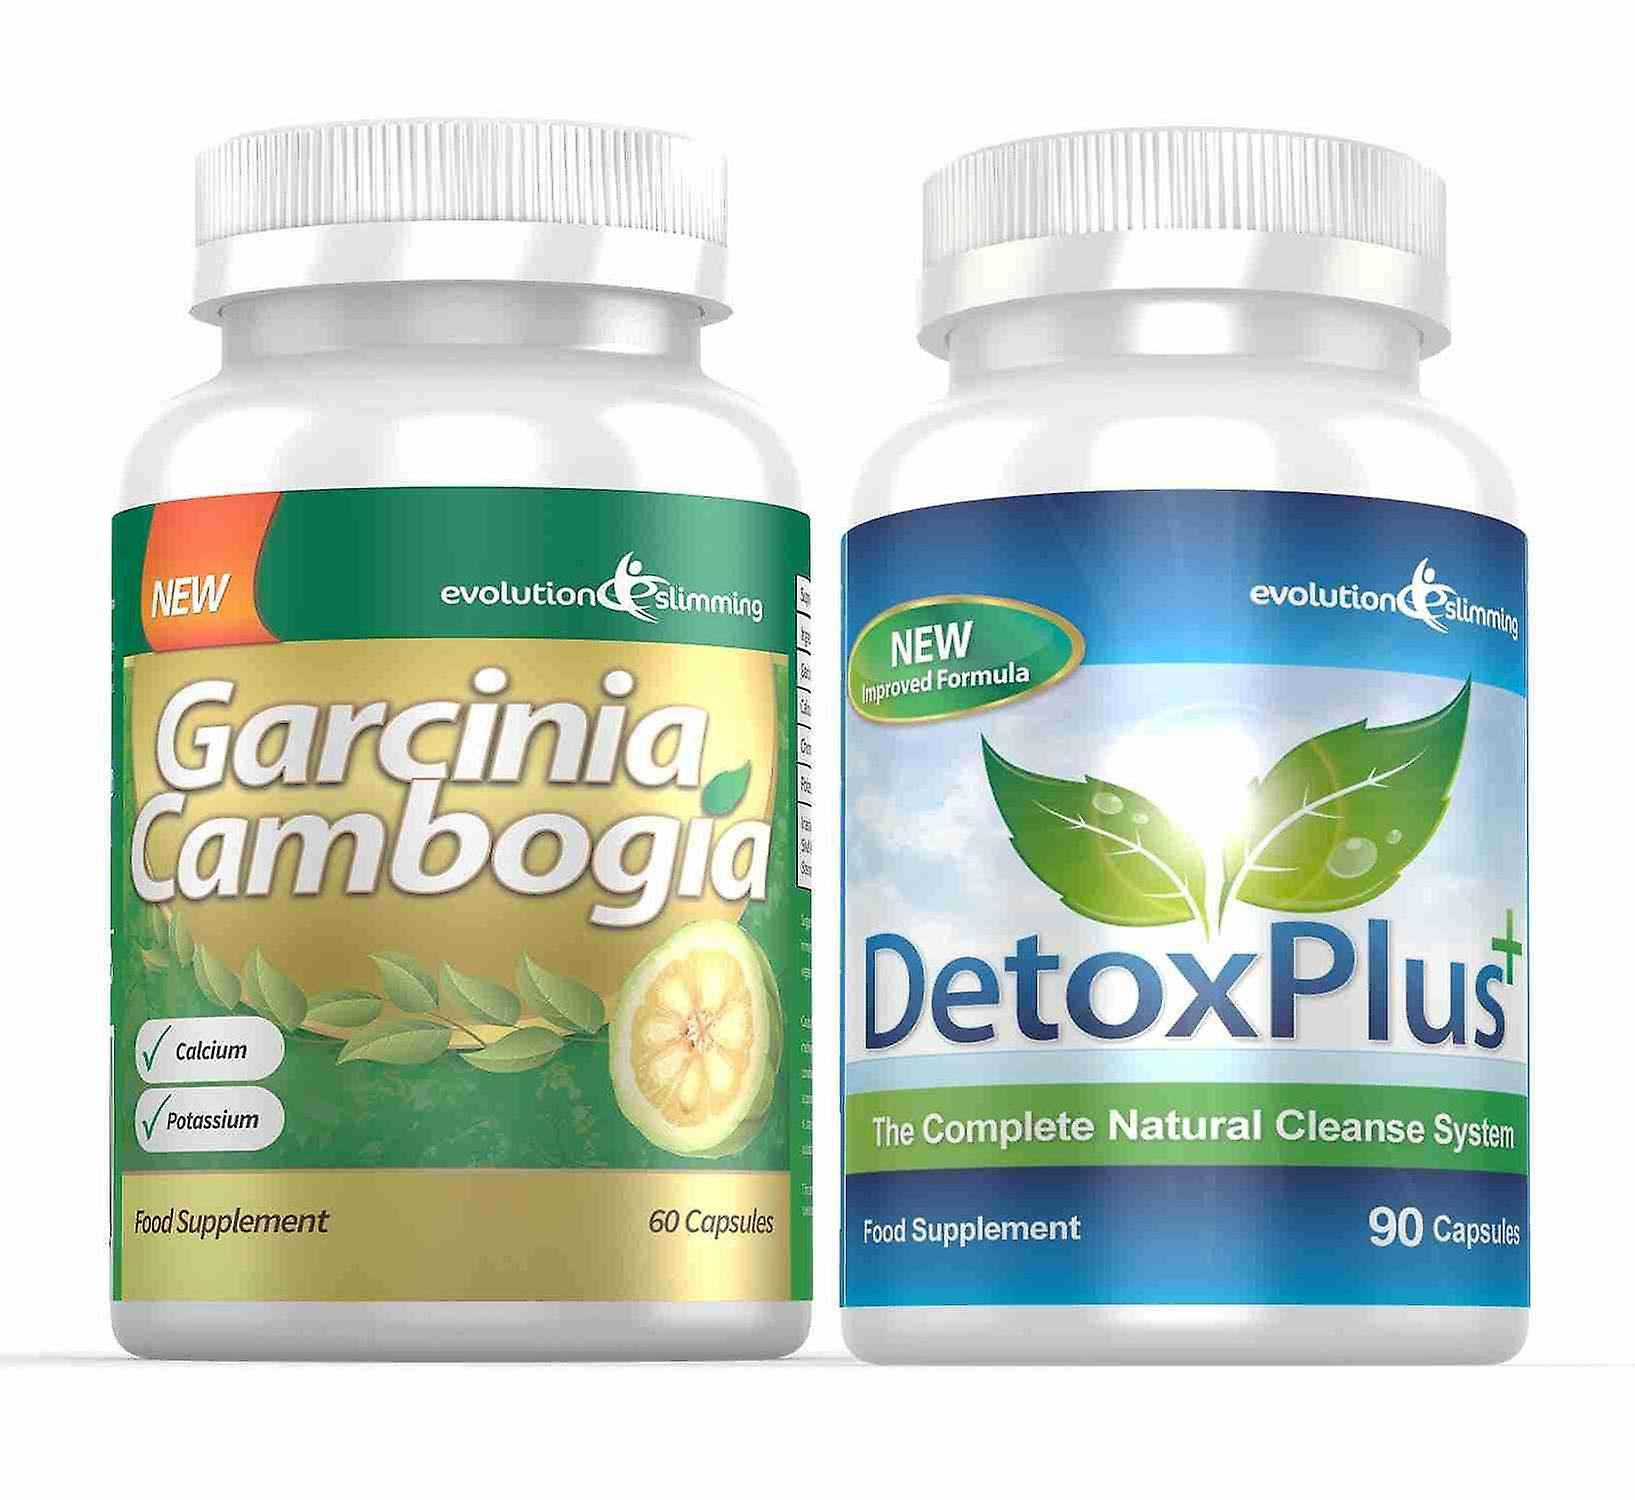 Garcinia Cambogia Cleanse Combo 1000mg 60% HCA with Potassium and Calcium - 1 Month Supply - Appetite Control and Colon Cleanse - Evolution Slimming